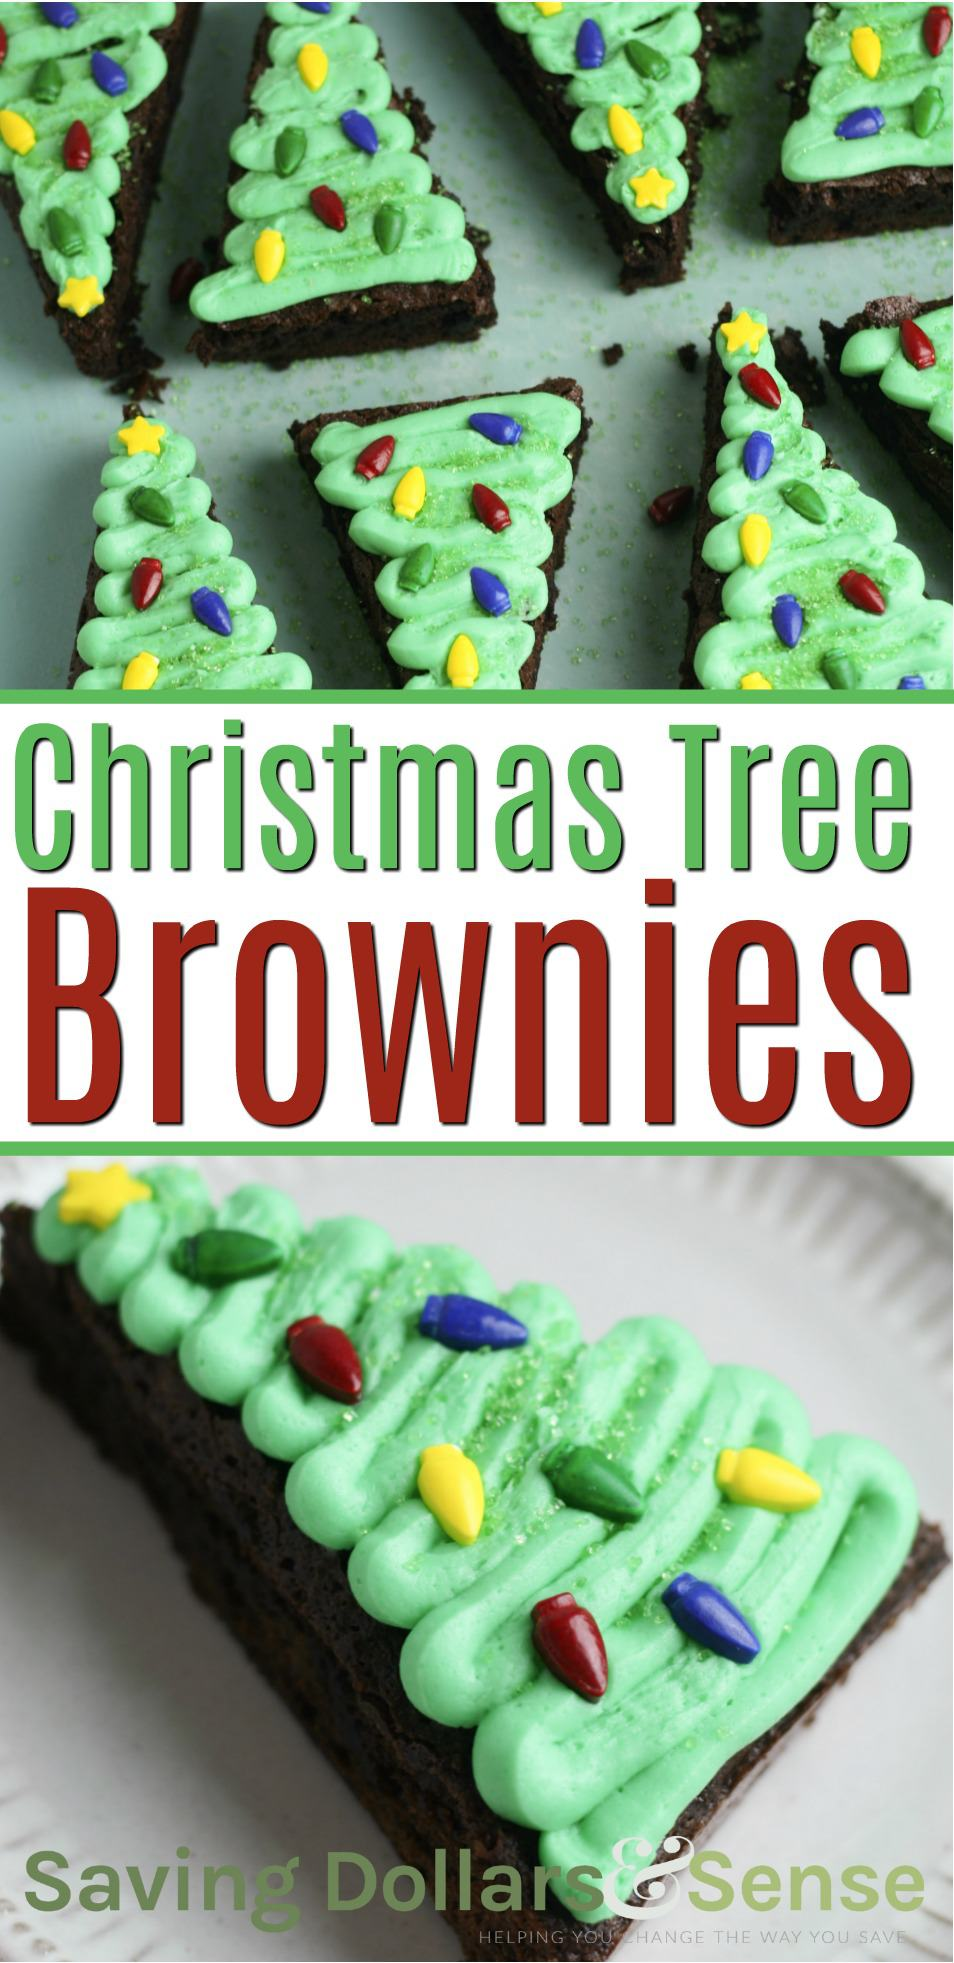 The Best Christmas Brownies